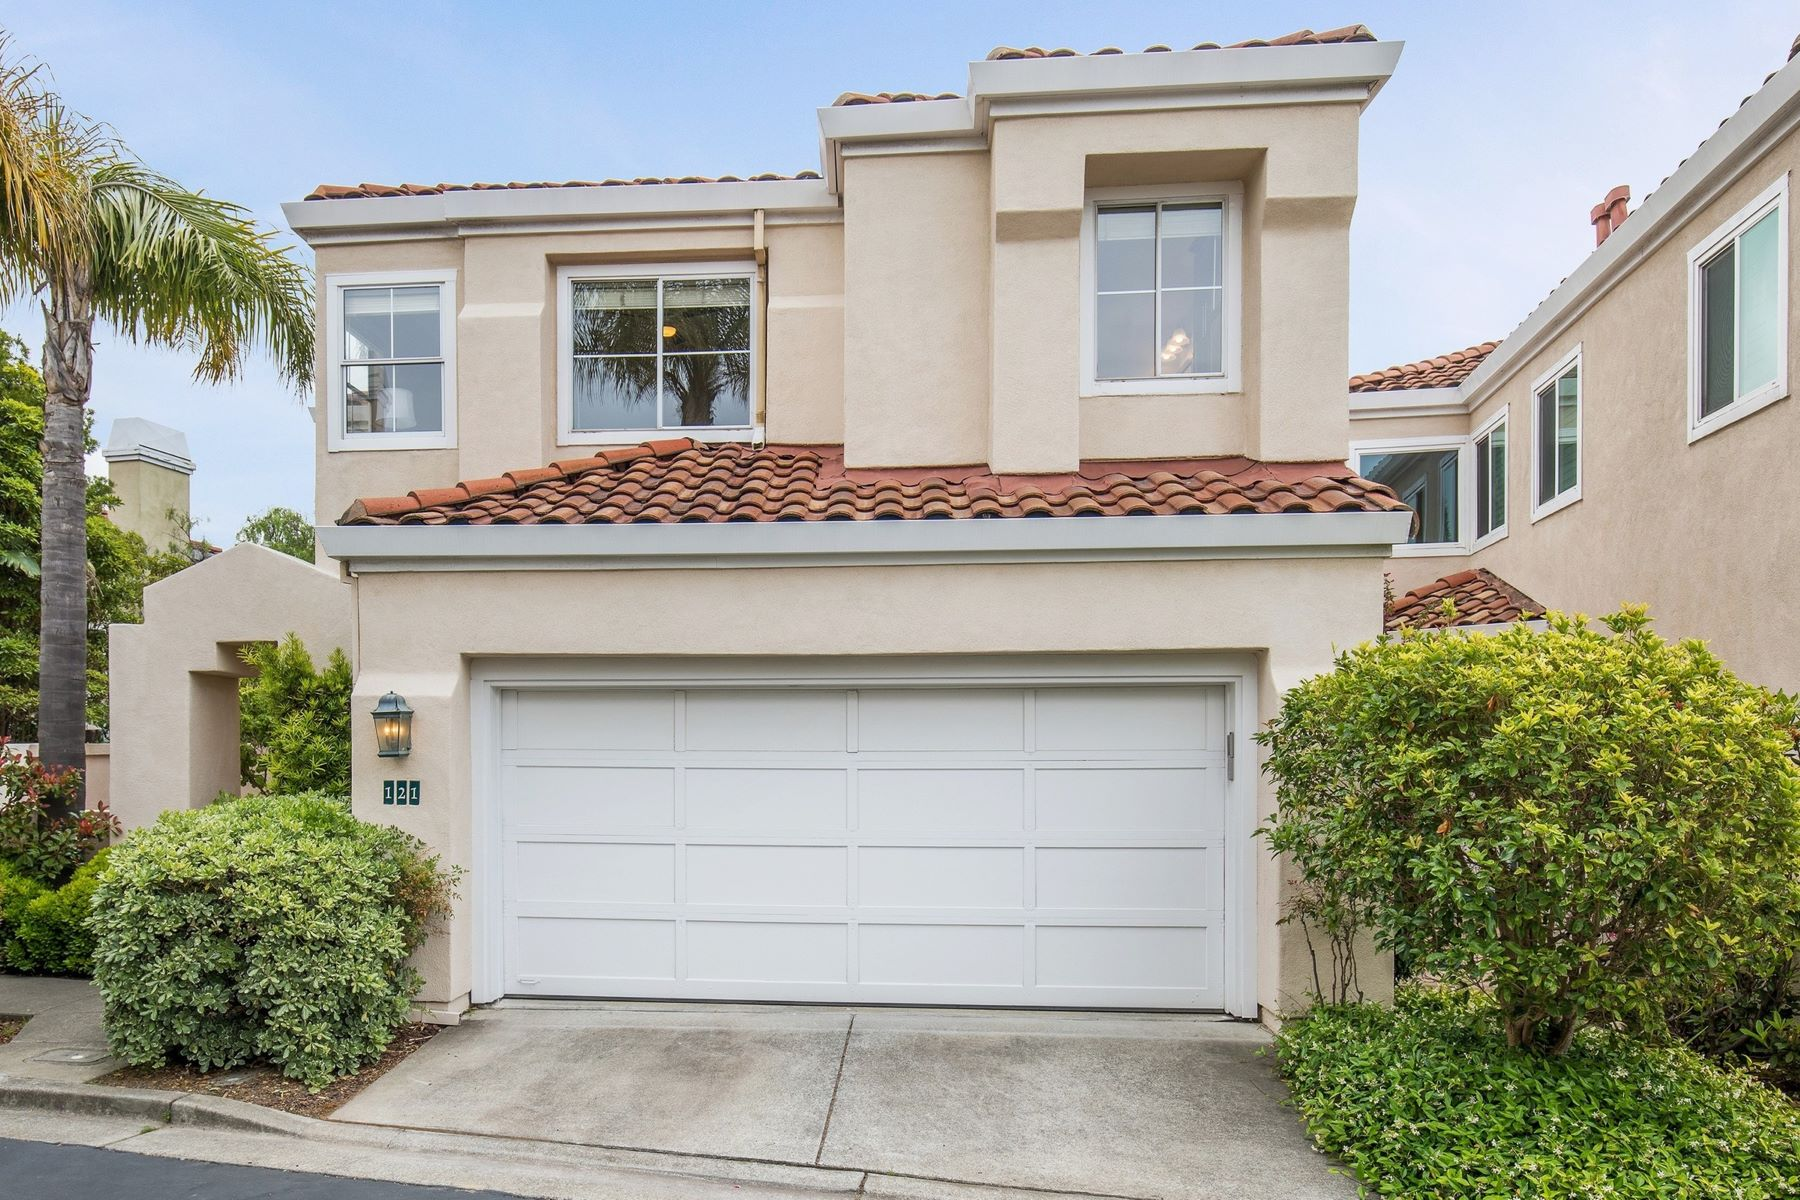 Single Family Homes for Active at Immaculate Harbor Bay Isle Home 121 Fundy Bay Alameda, California 94502 United States